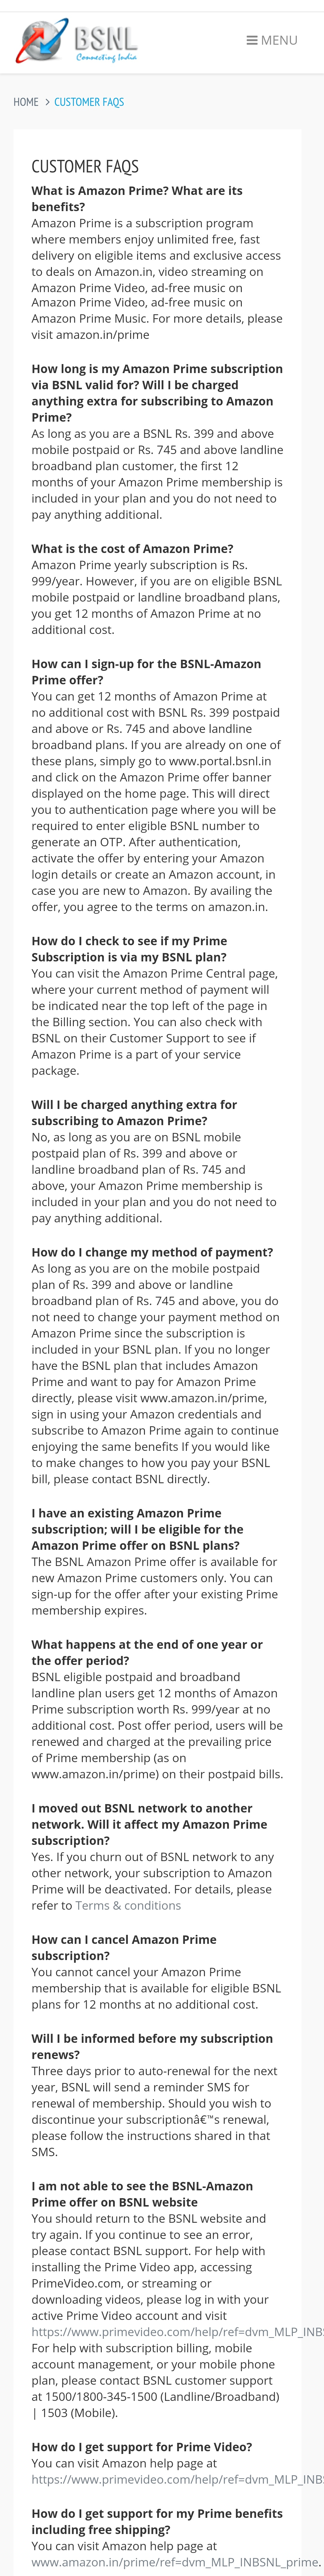 BSNL is providing 1 year of Amazon Prime at no extra cost to